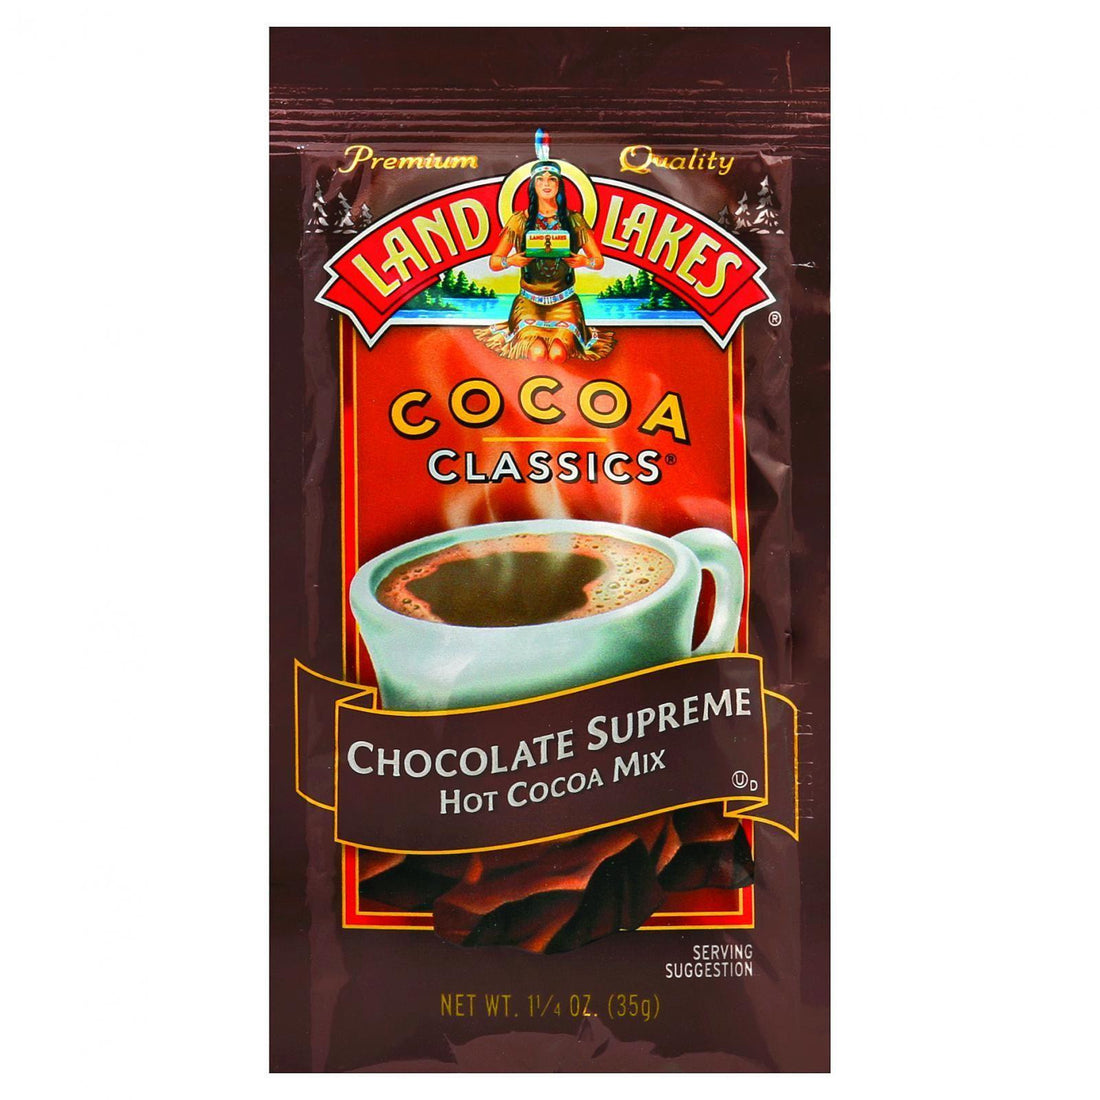 Mother Mantis: Cocoa Cls Choc Supreme Land O Lakes